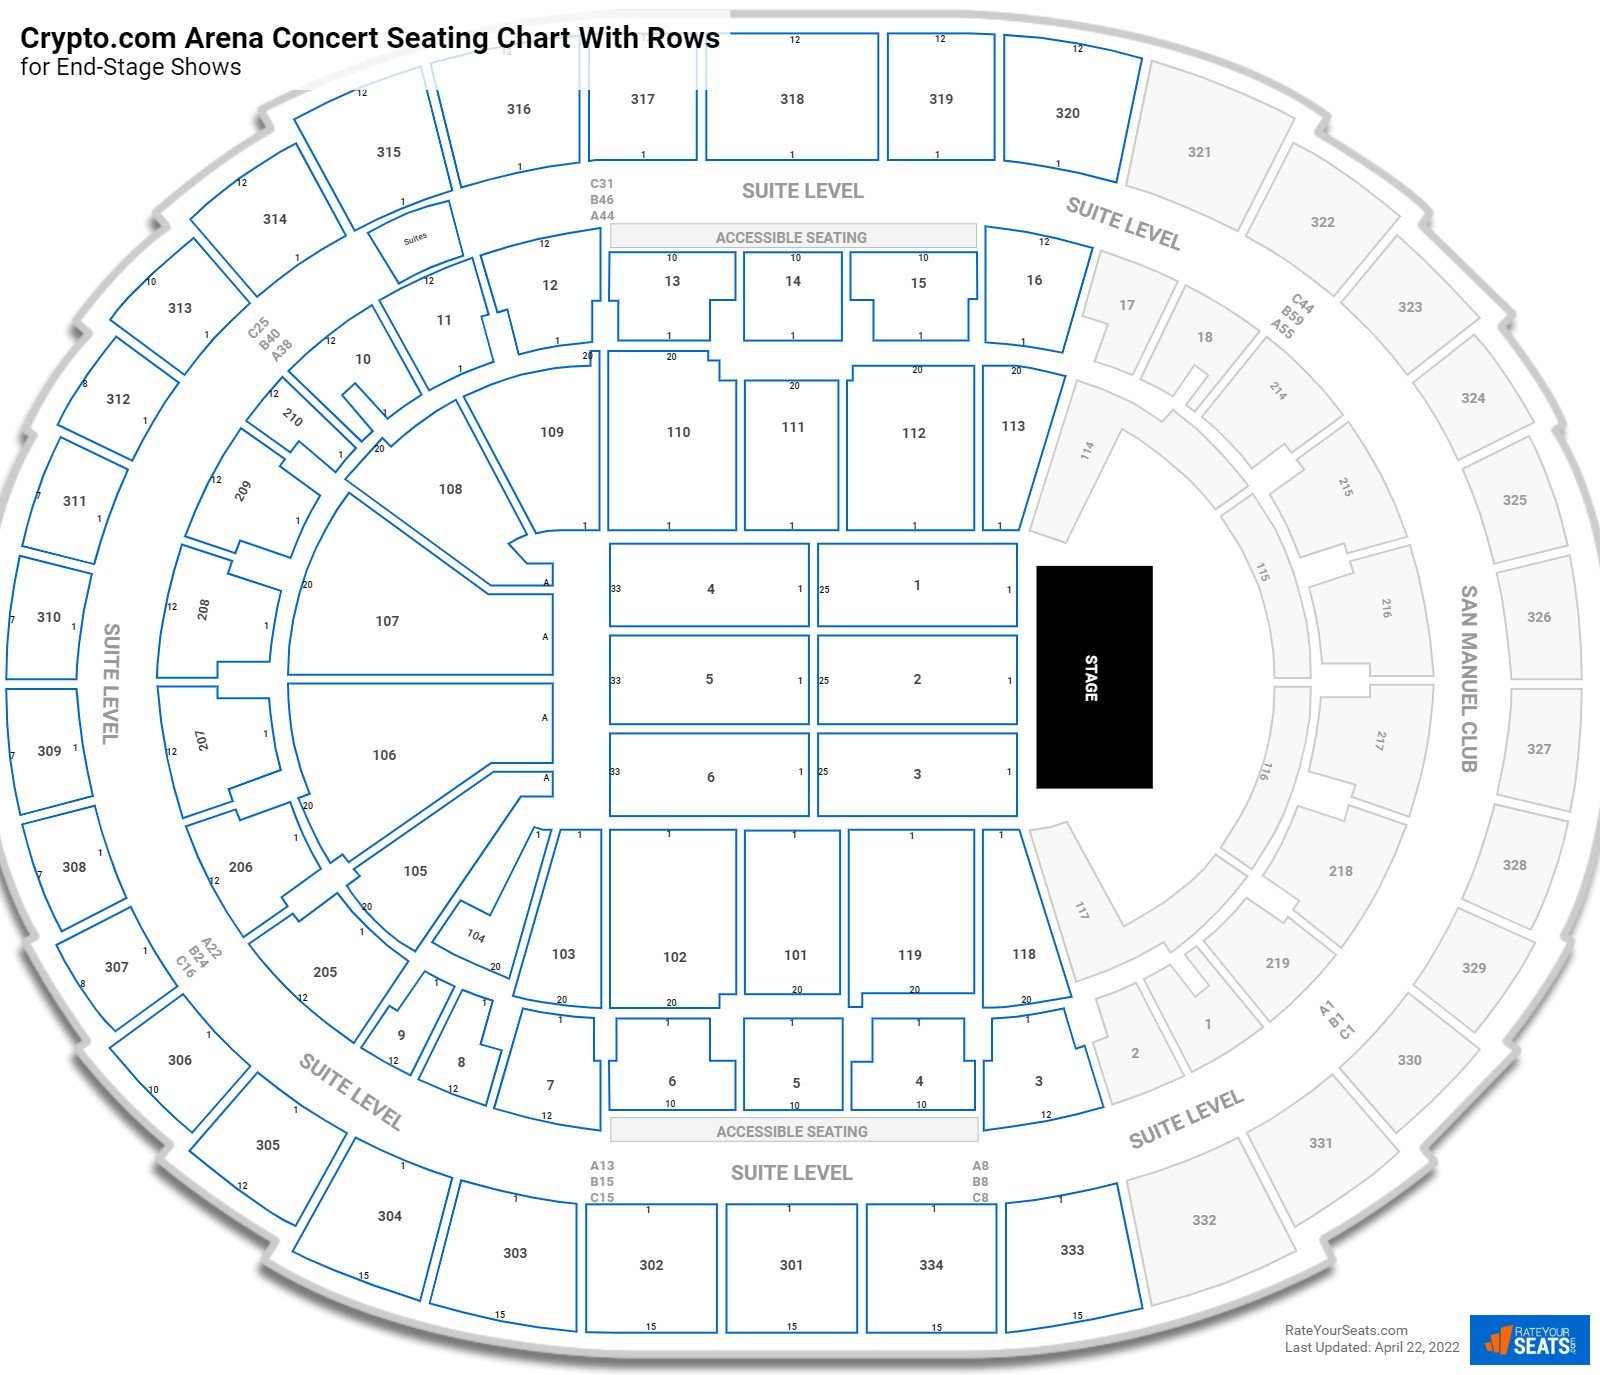 Staples Center seating chart with rows concert